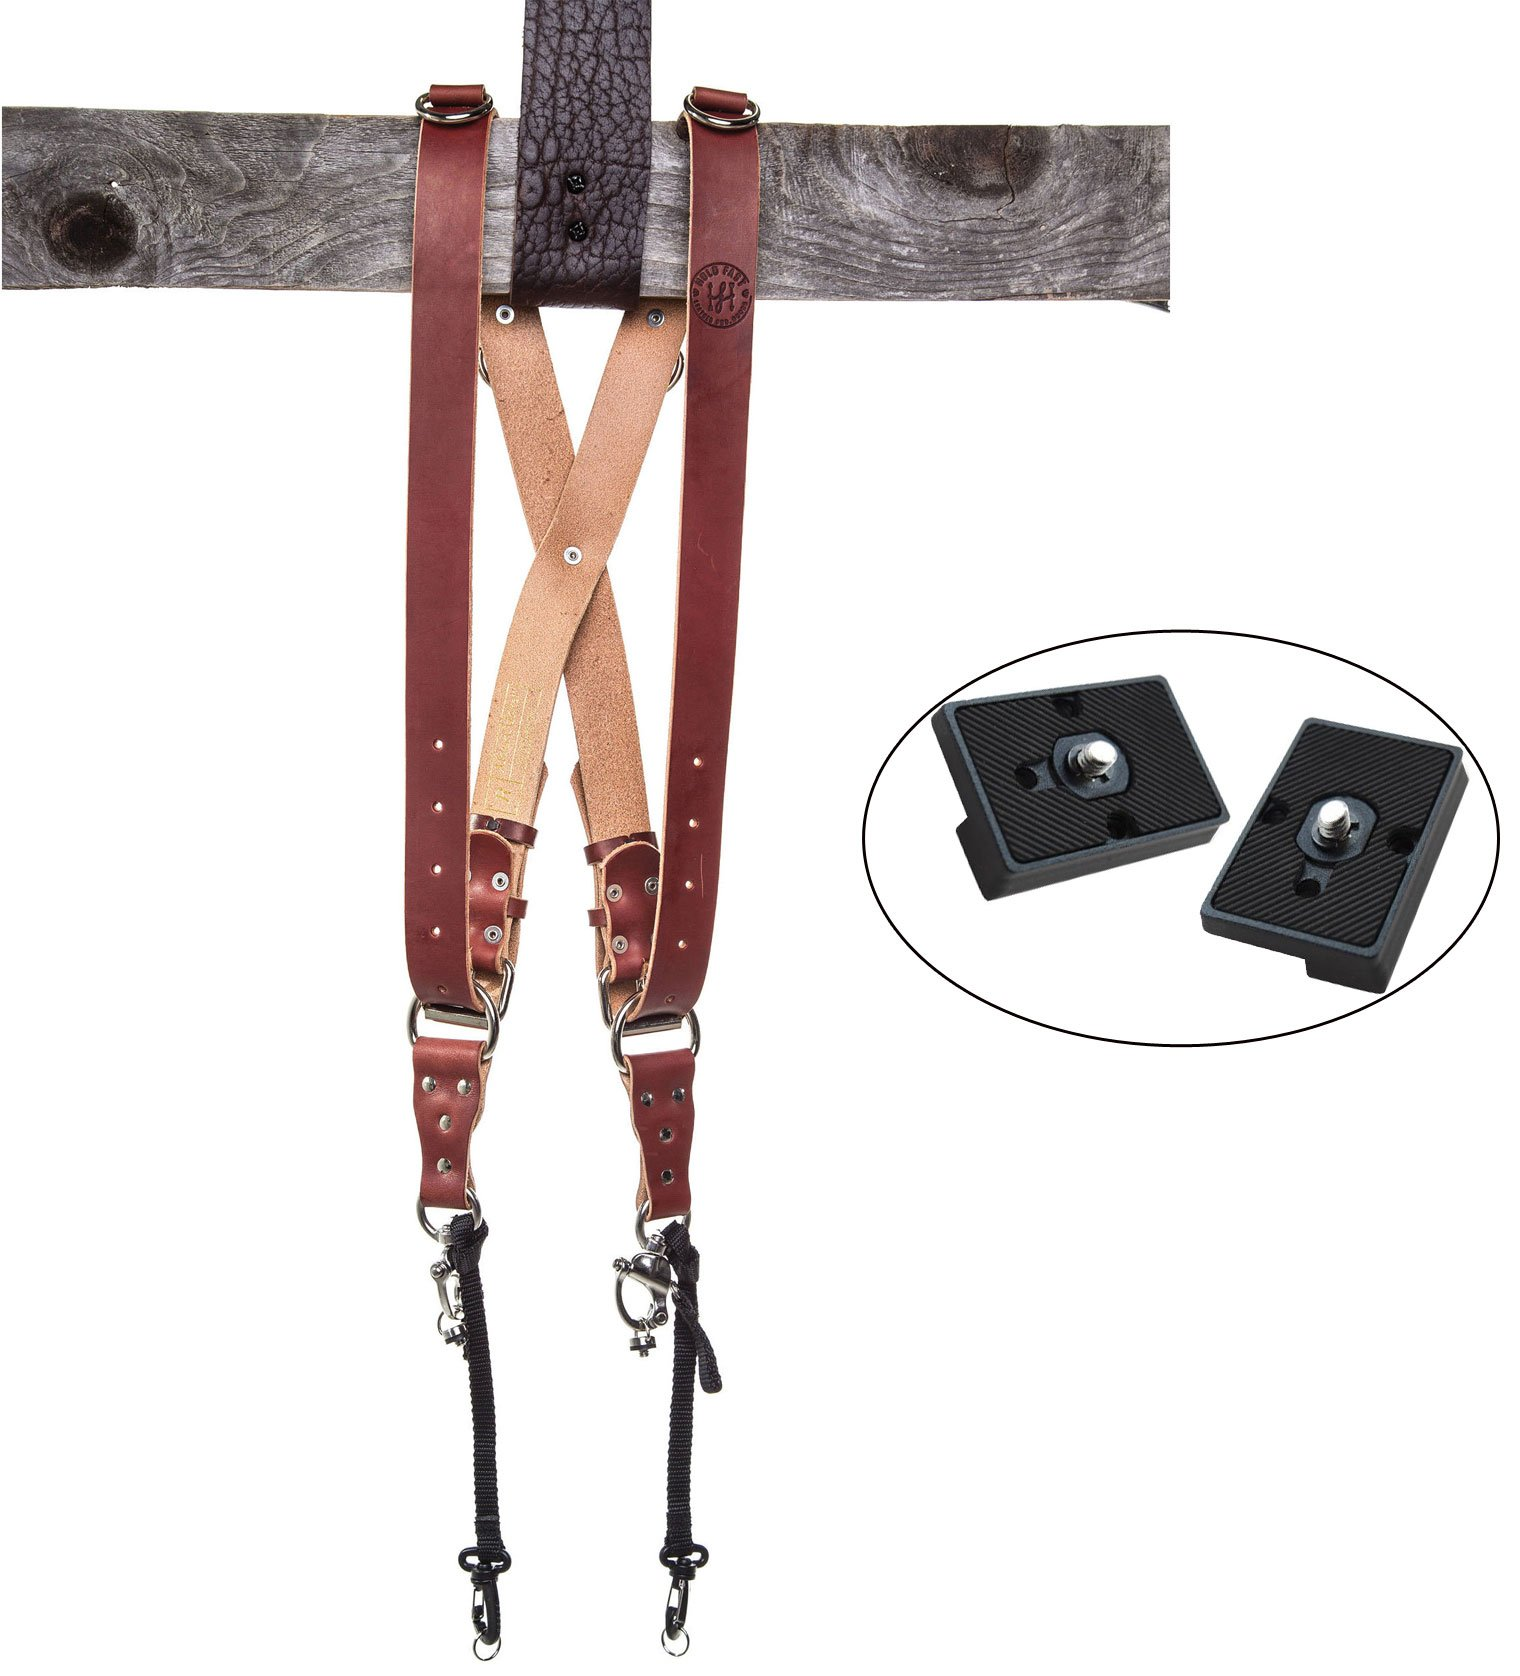 Holdfast Gear Money Maker Multi-Camera Harness, Bridle Leather Chestnut (Medium) and Two Ivation Replacement Plates For The Manfrotto RC2 Rapid Connect Adapter by Holdfast